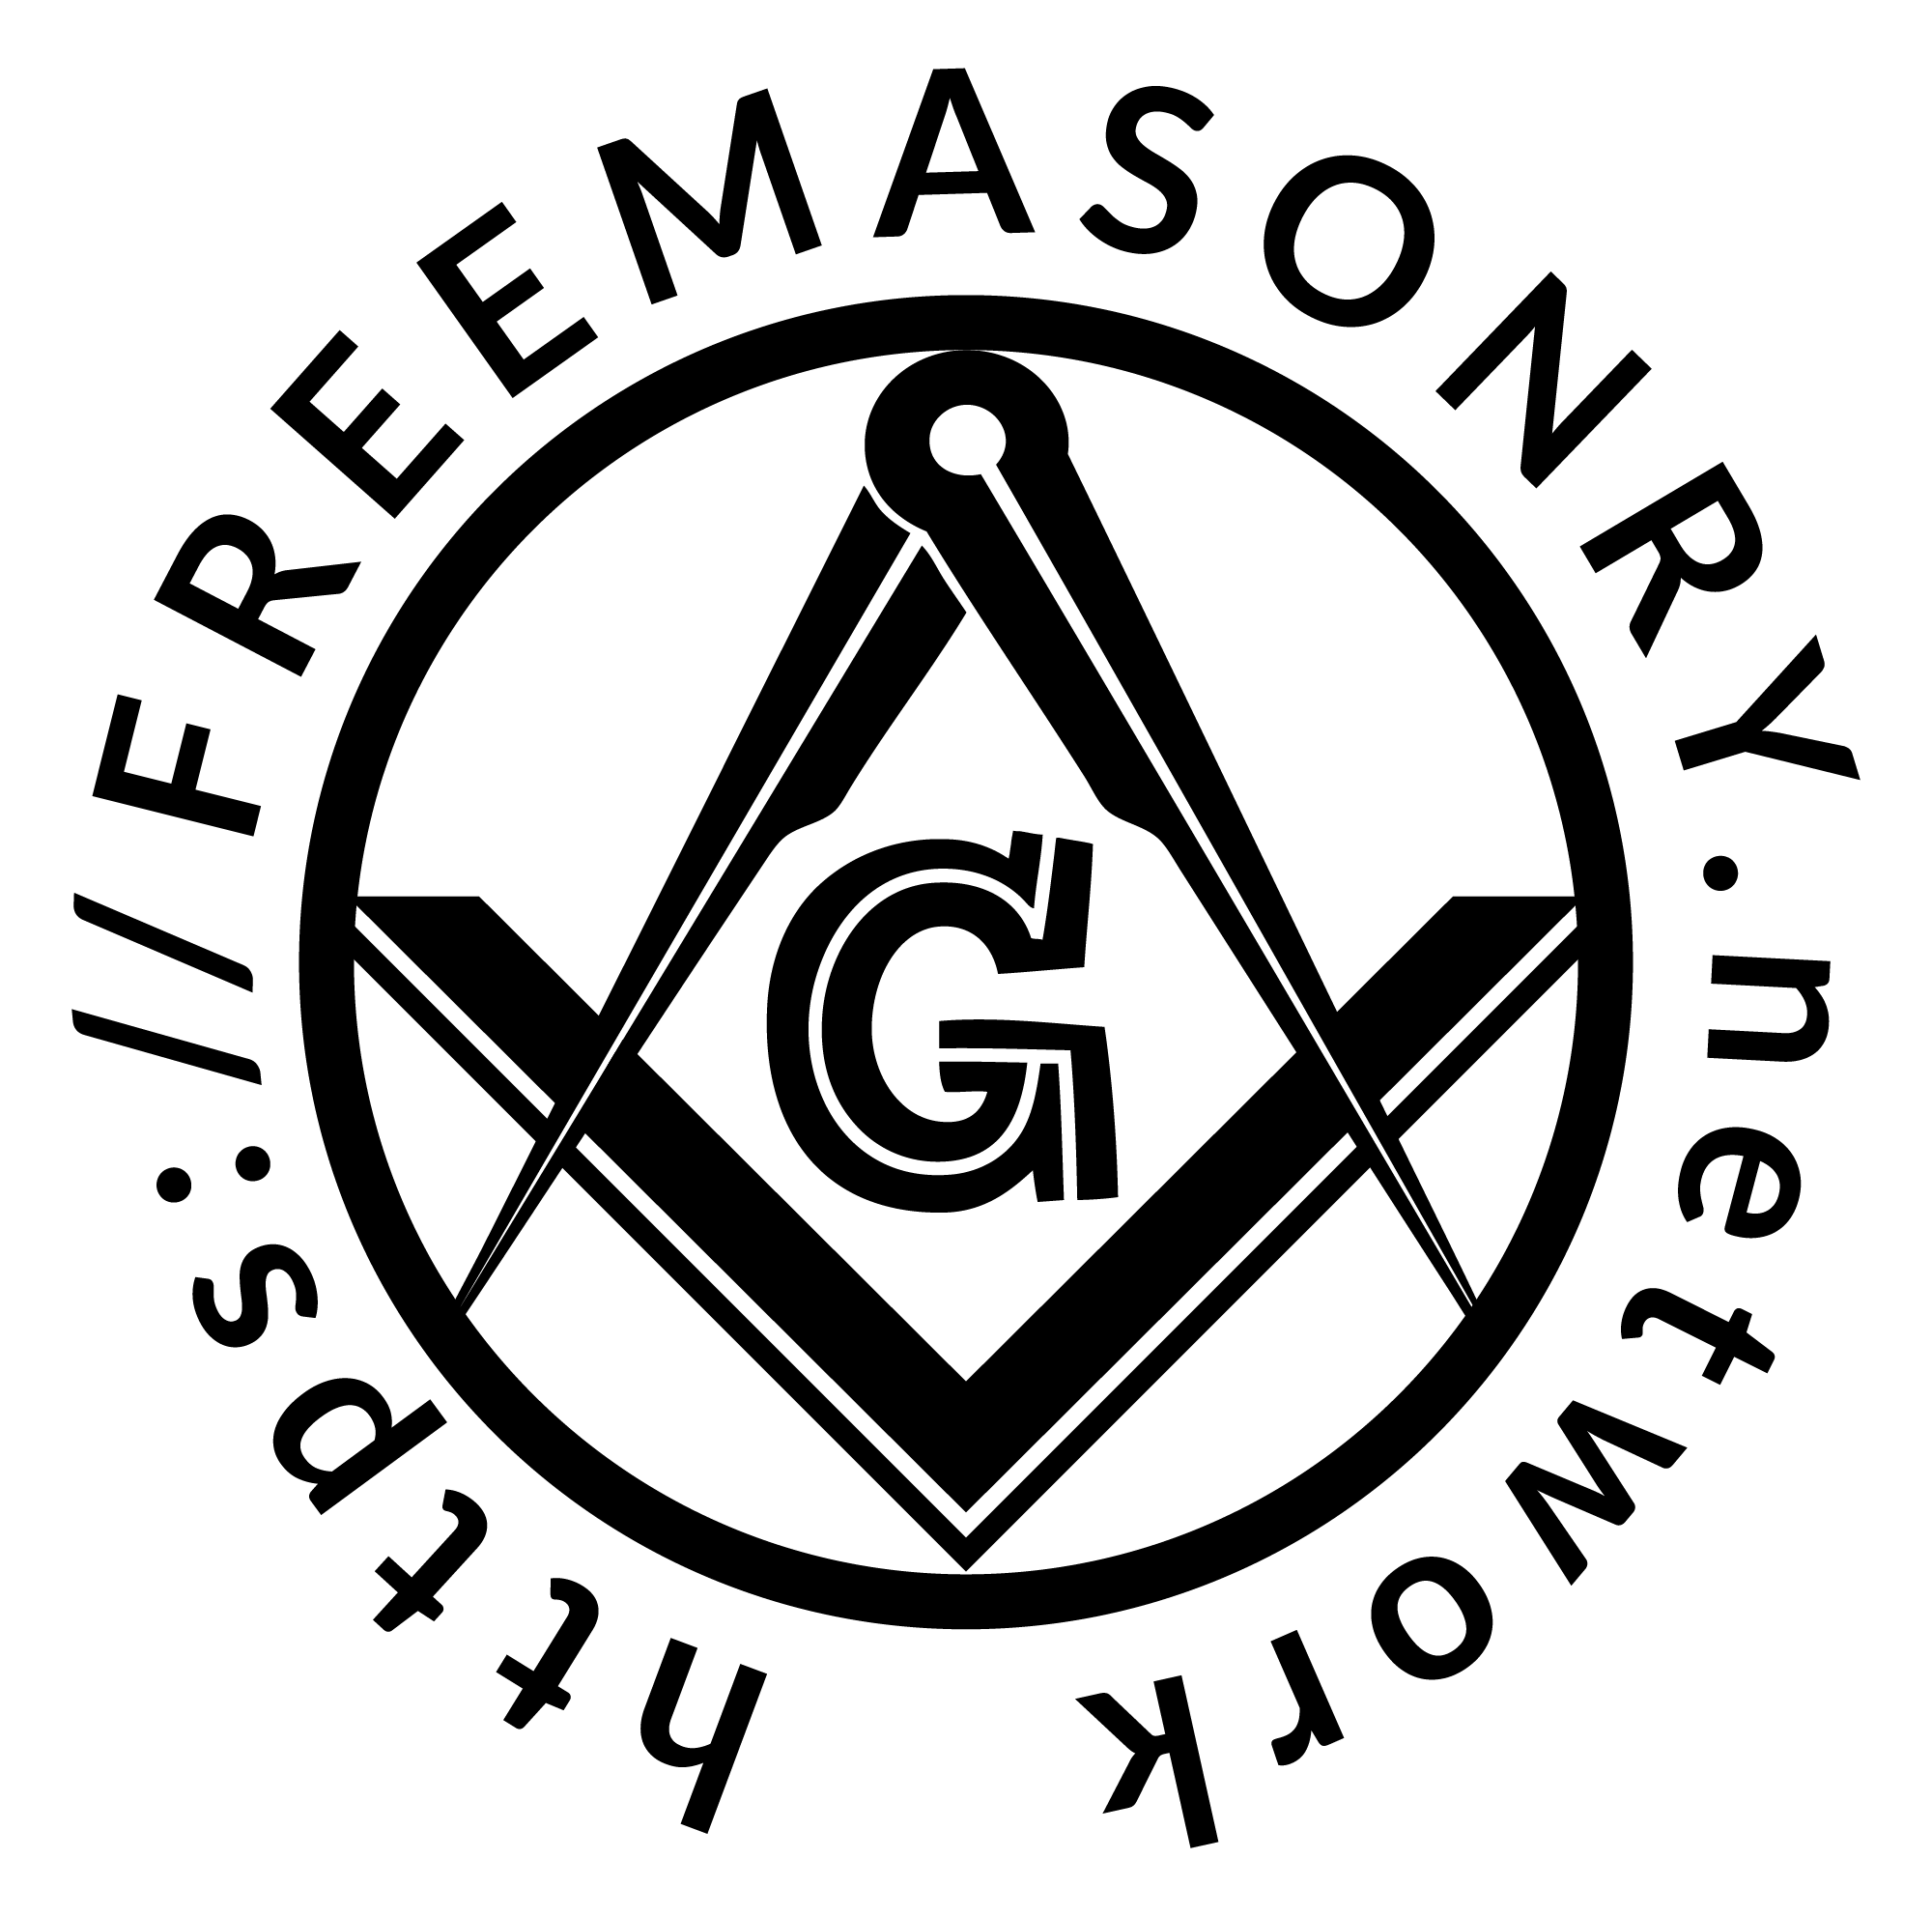 FREEMASONRY AND PATRIOTISM